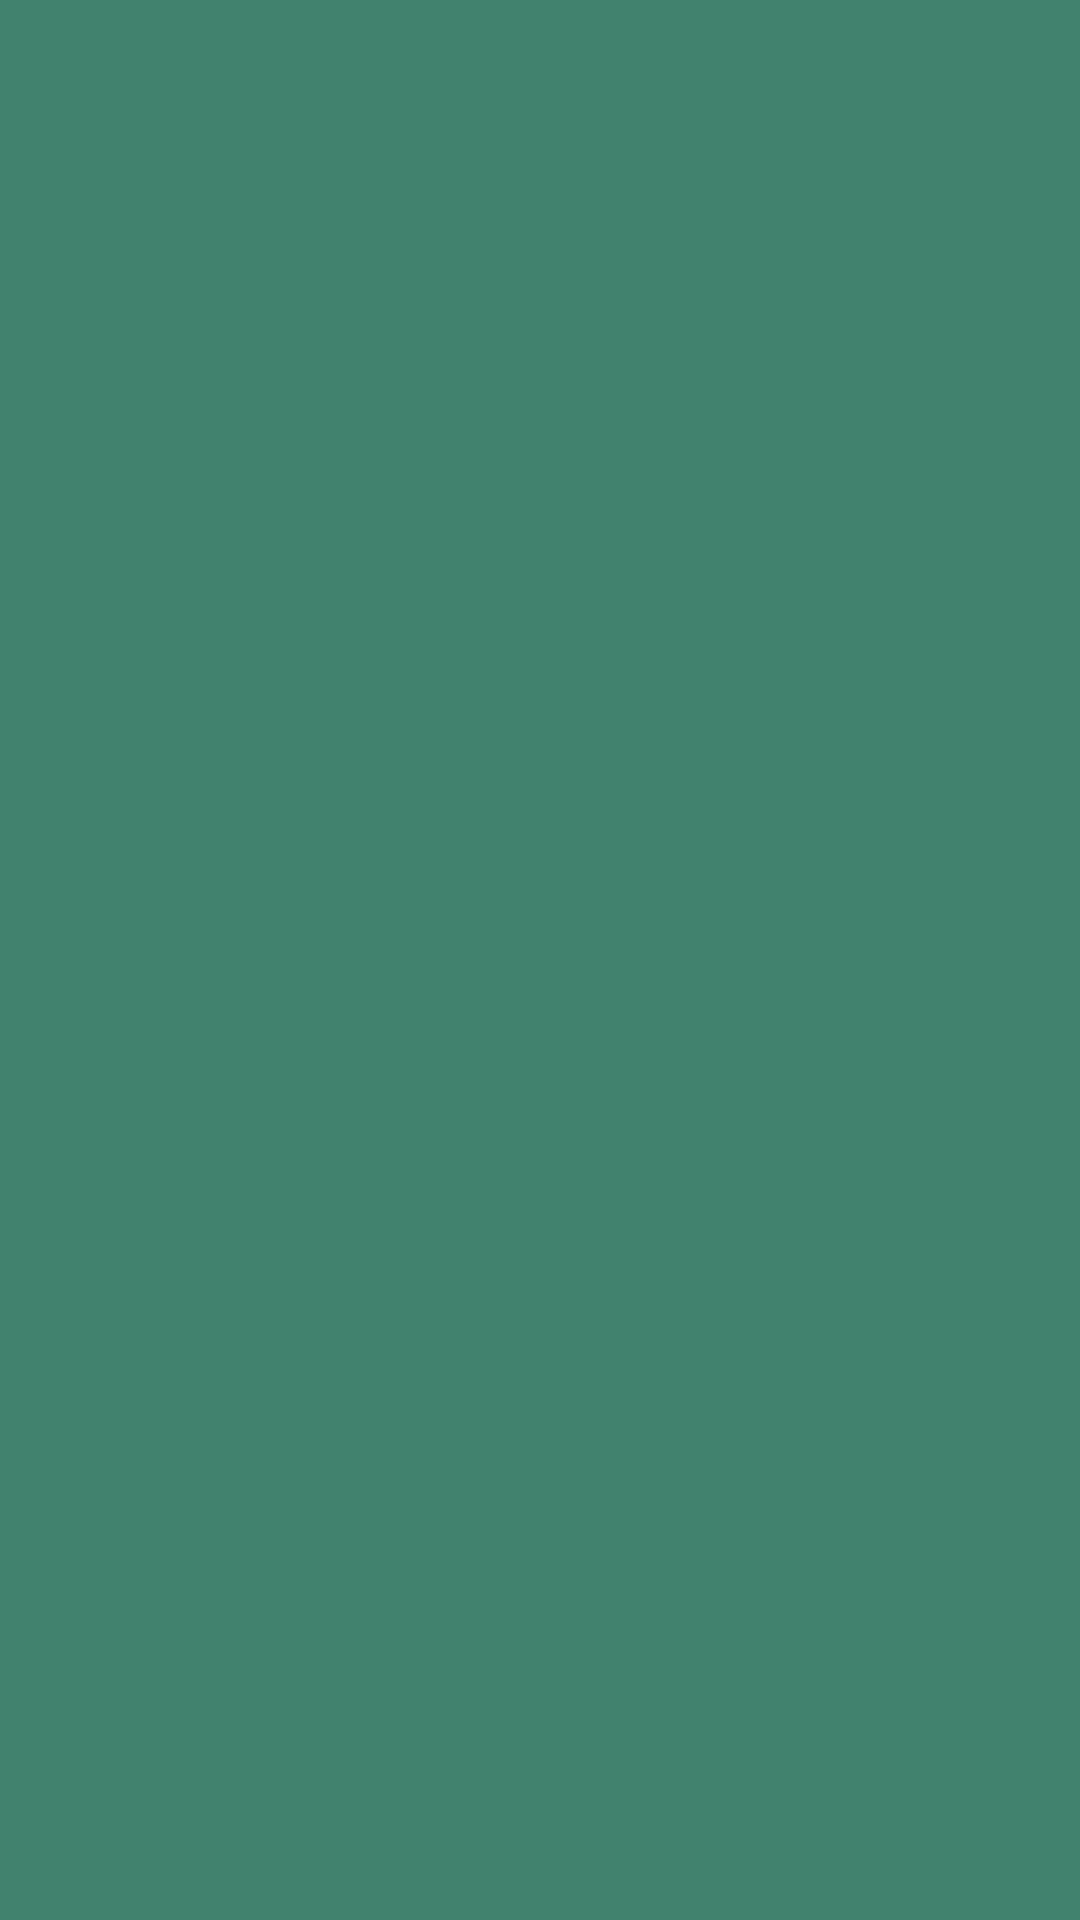 1080x1920 Viridian Solid Color Background